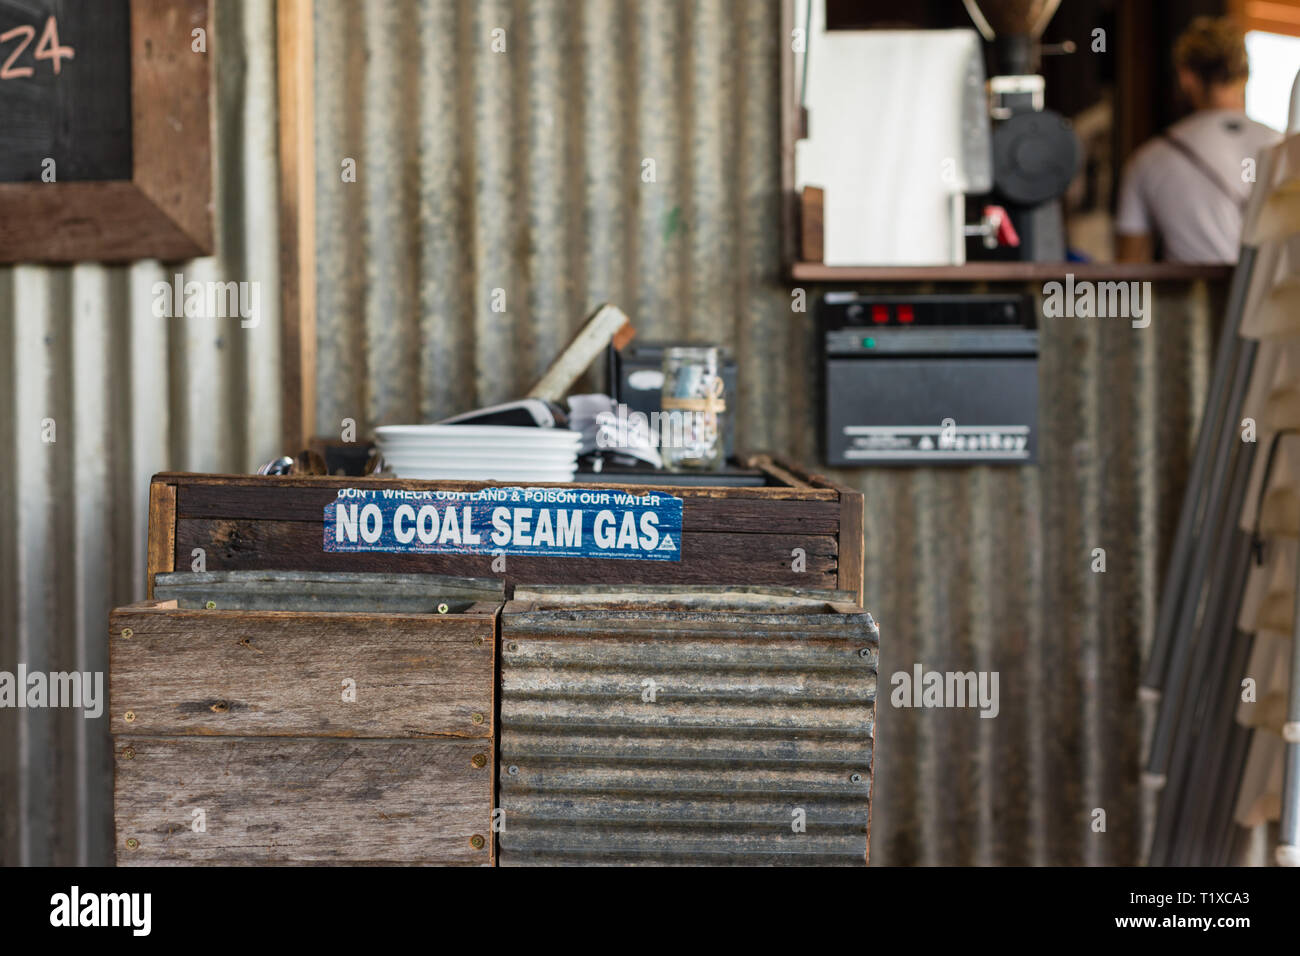 No Coal Seam Gas sticker - Stock Image